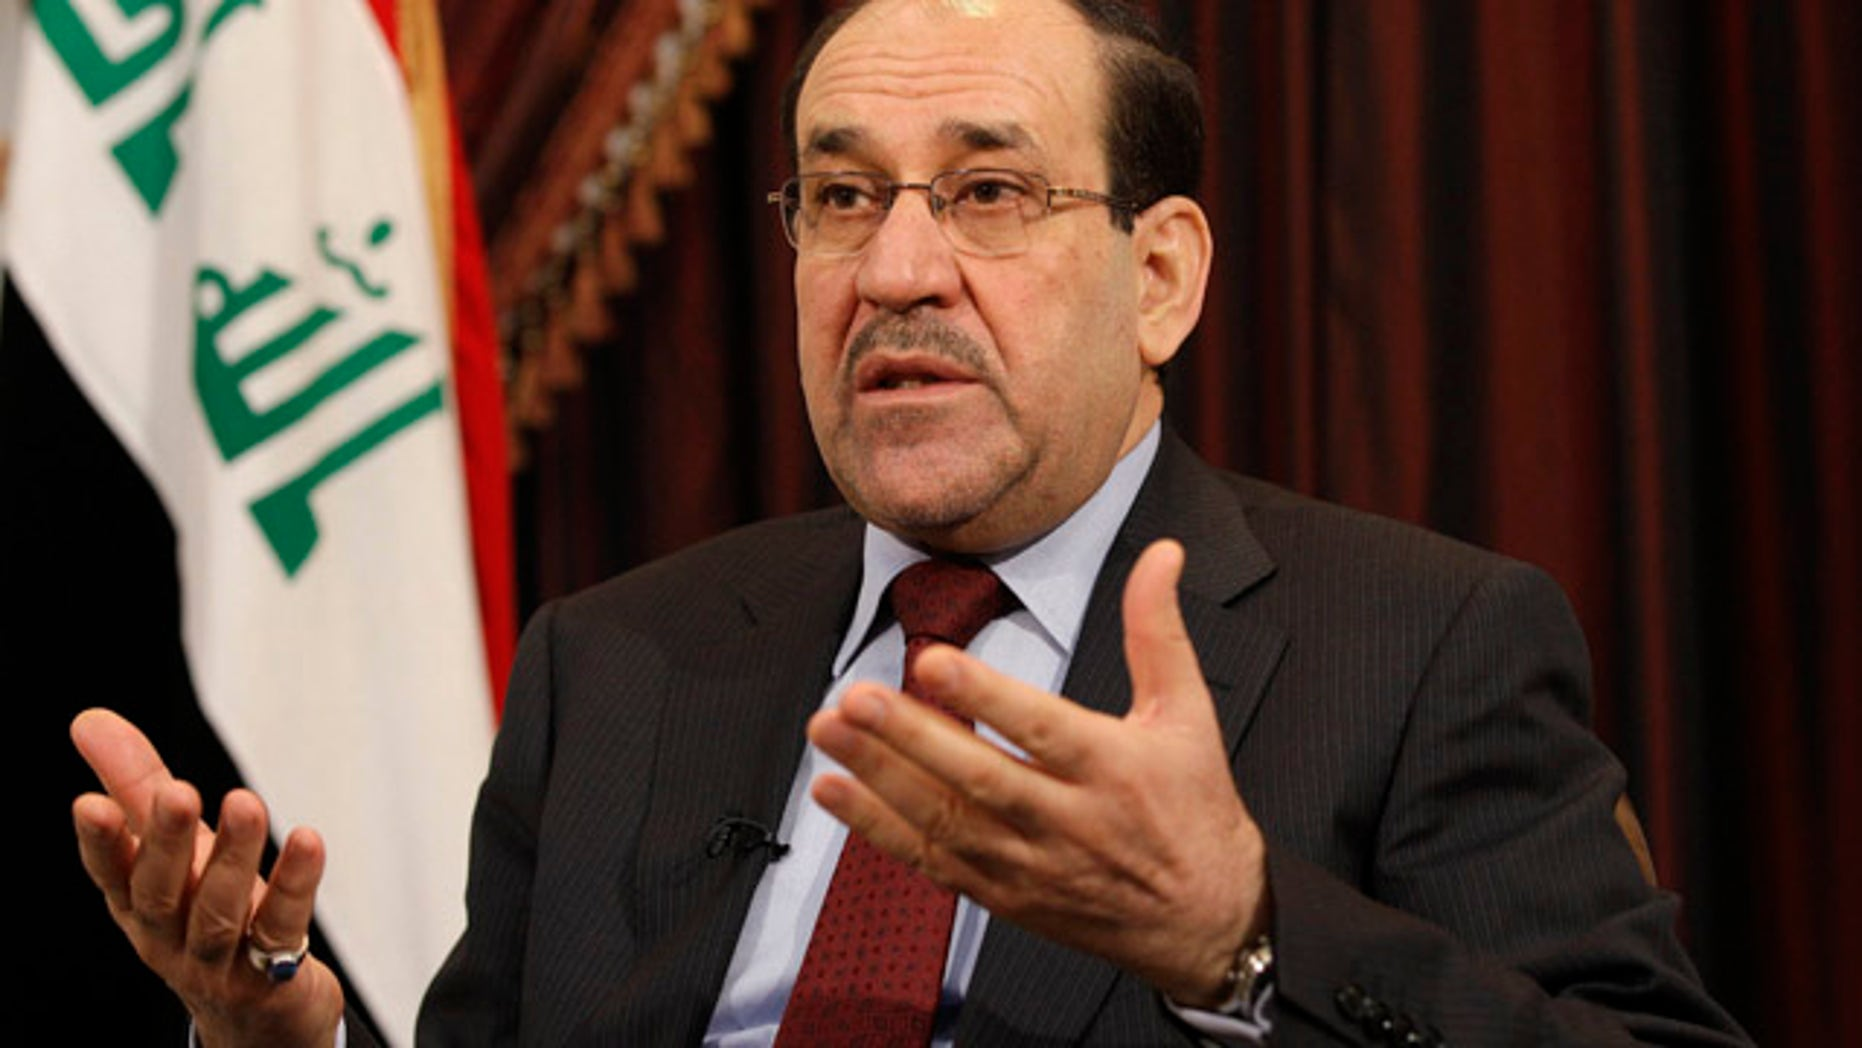 December 3, 2011: Iraq's Shiite Prime Minister Nouri al-Maliki is seen during an interview with The Associated Press in Baghdad. (AP Photo/Hadi Mizban, File)